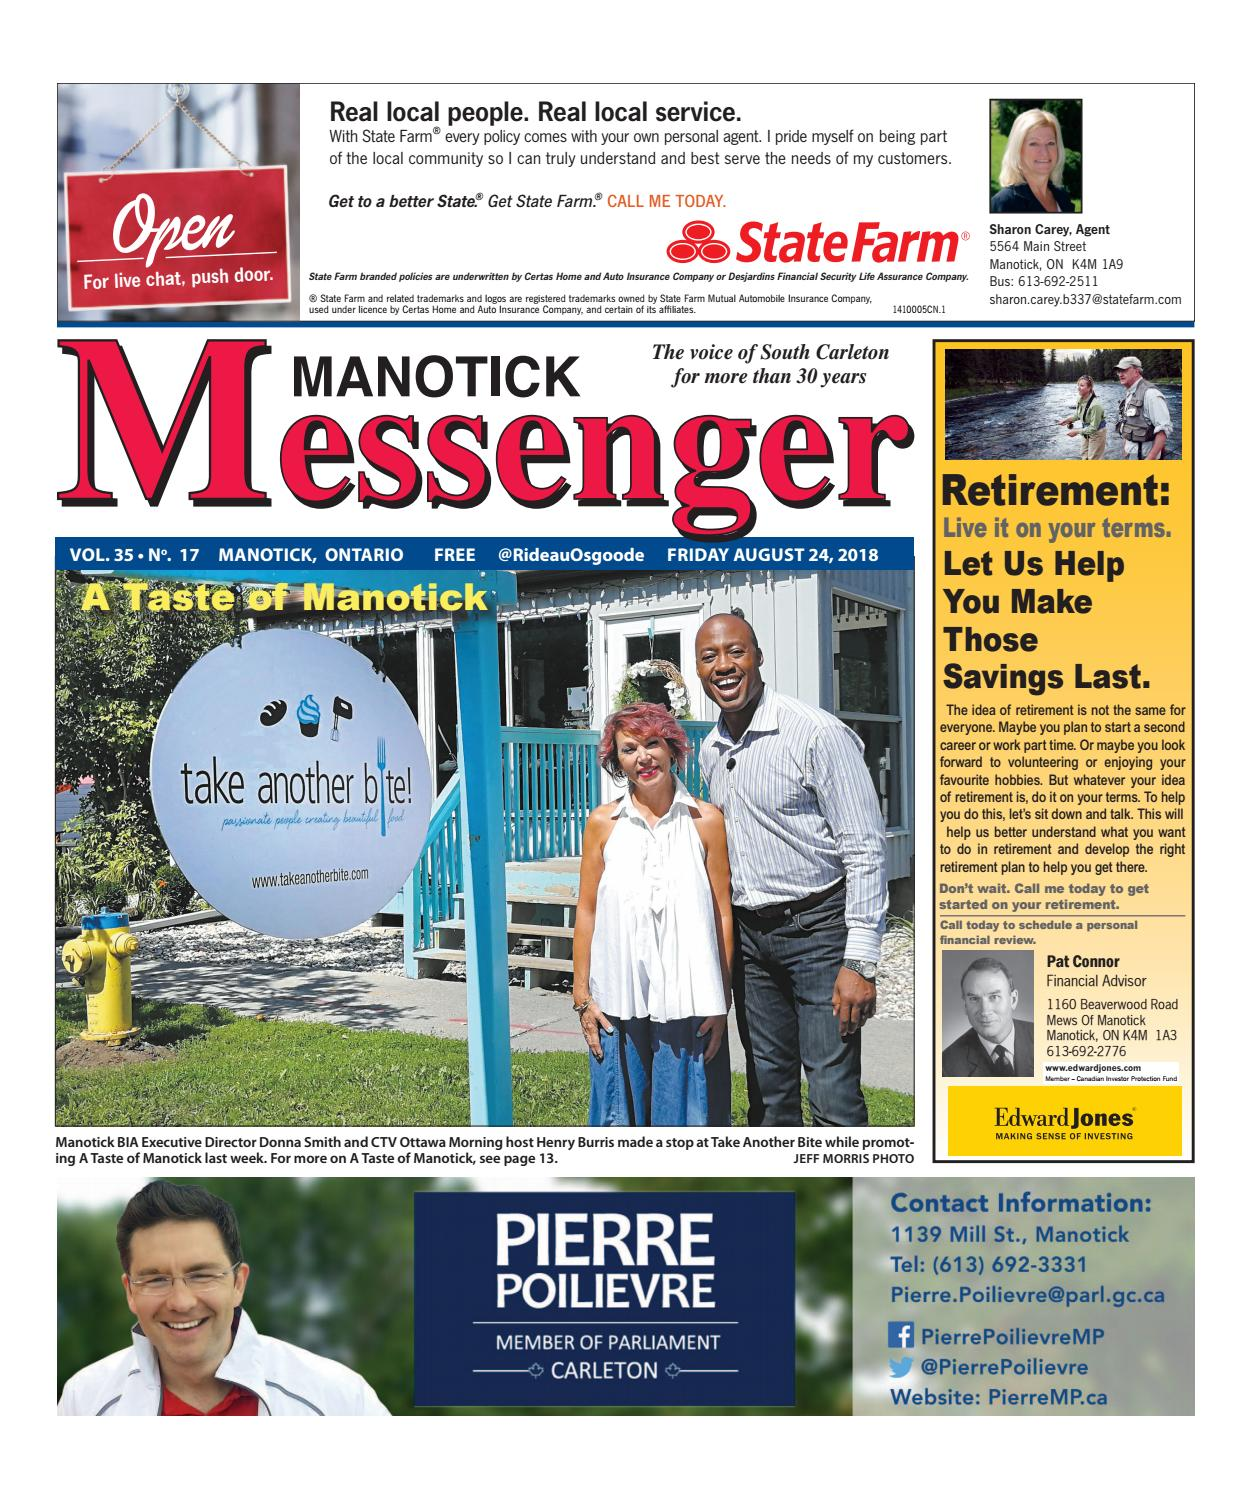 manotick messenger august 24 2018 by j morris issuu